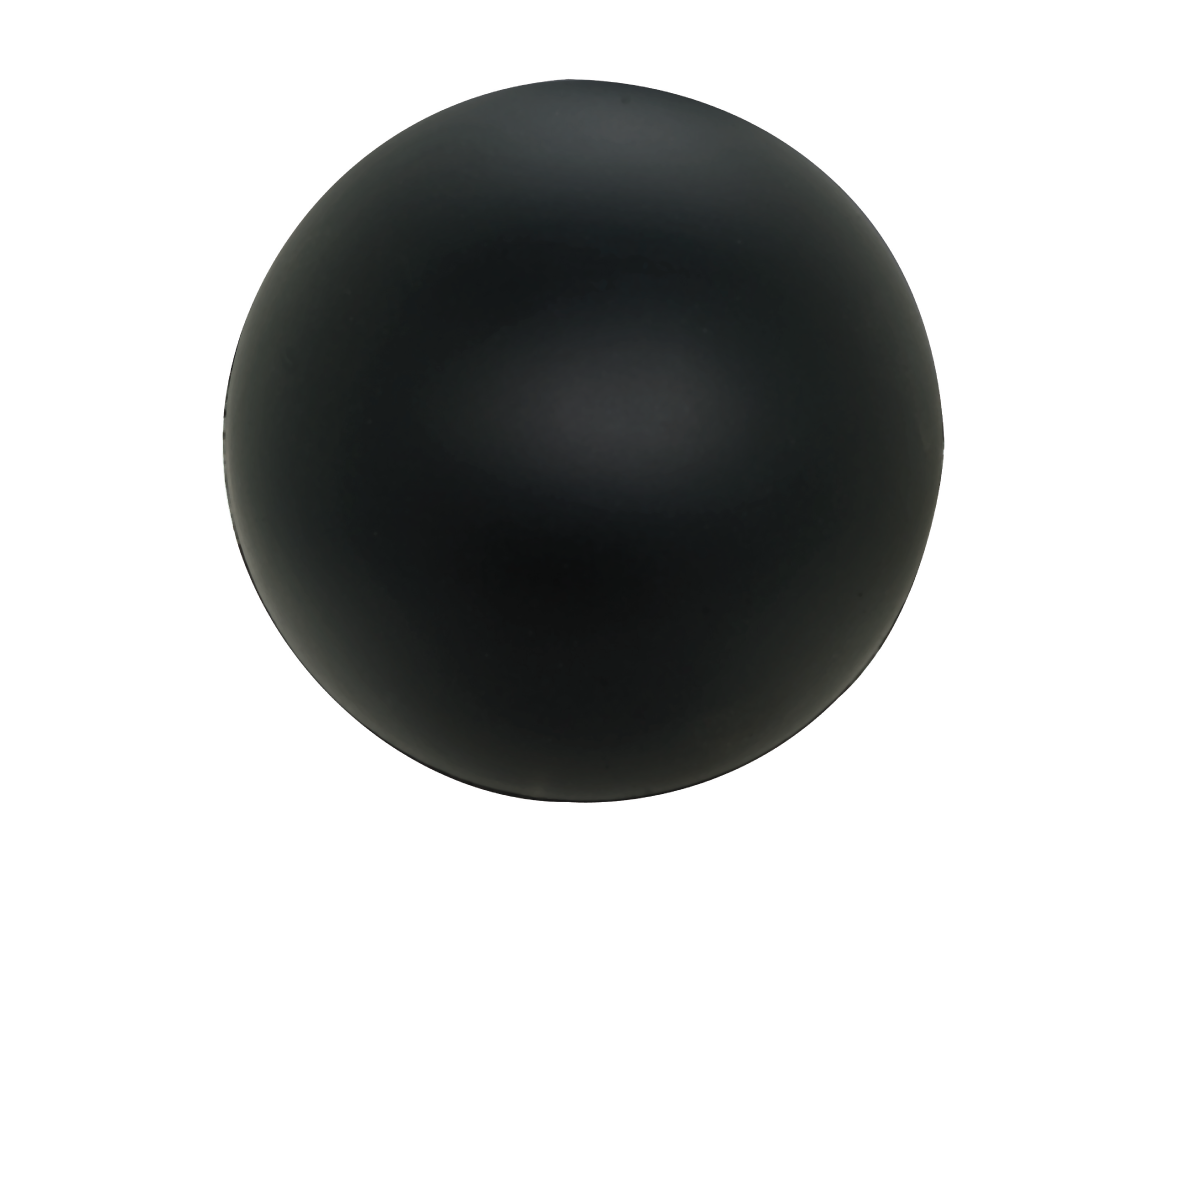 Black Colored Stress Ball